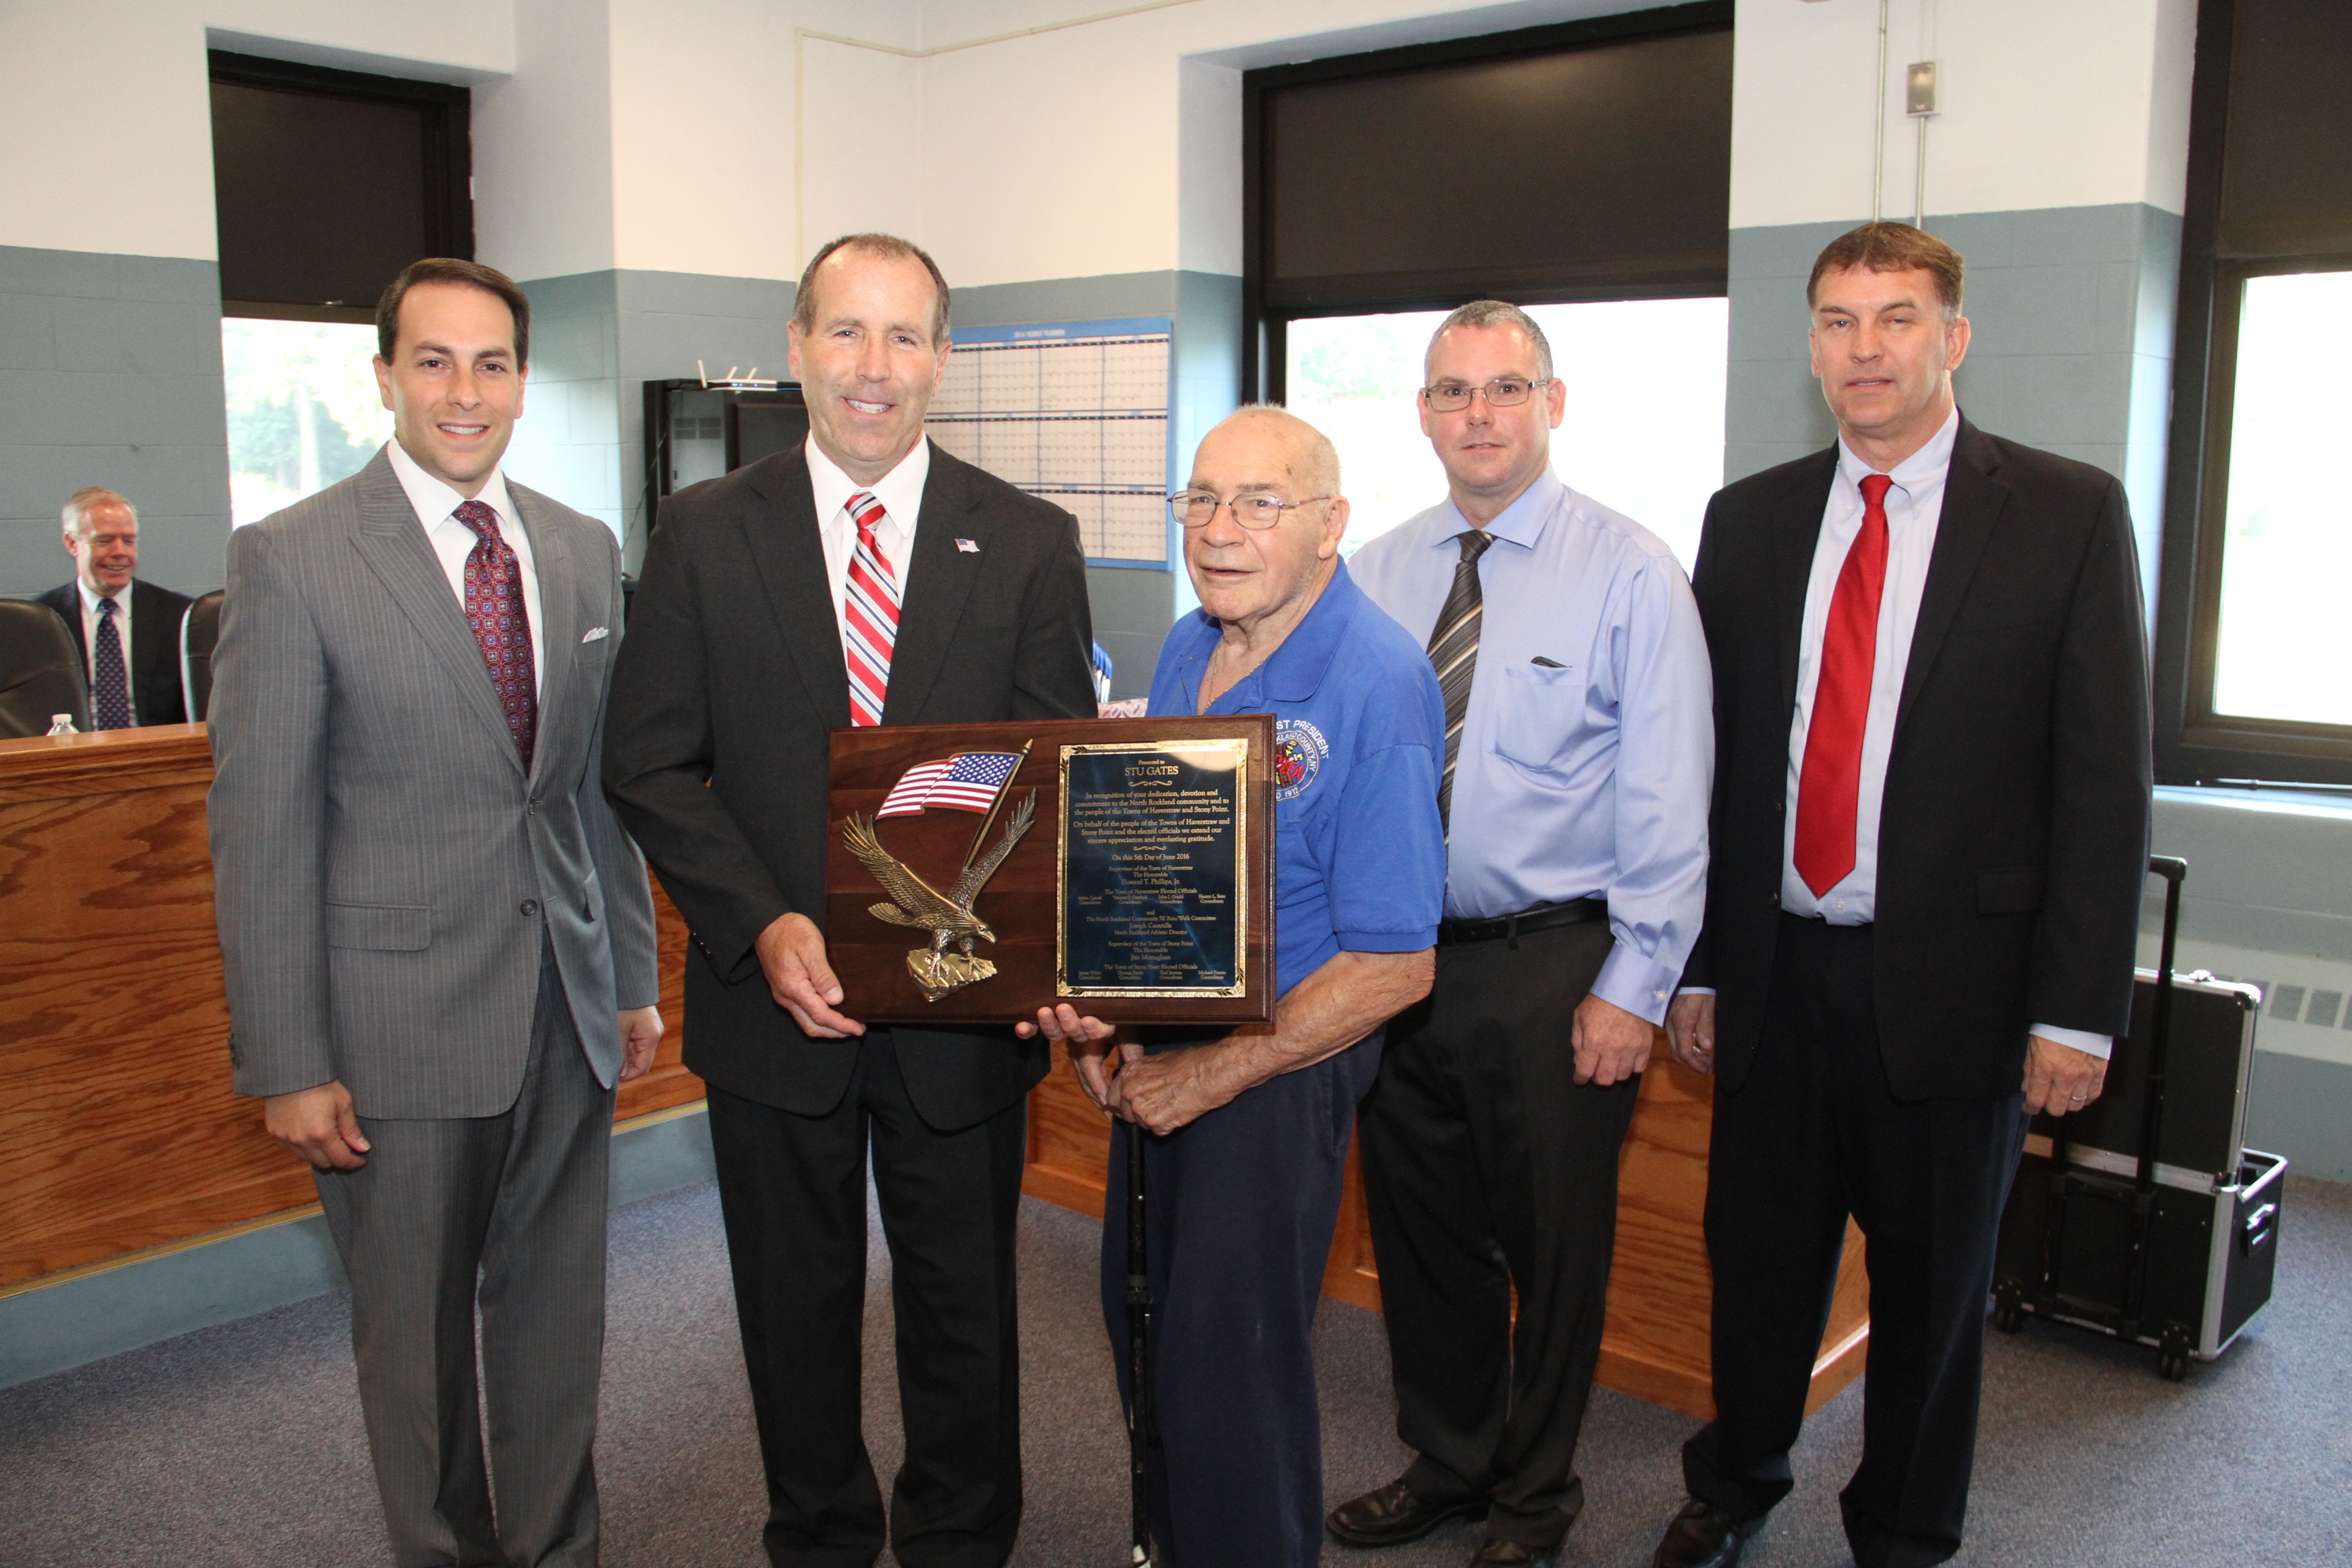 Recognition Award presented to Stu Gates for his dedication and devotion to the North Rockland Community